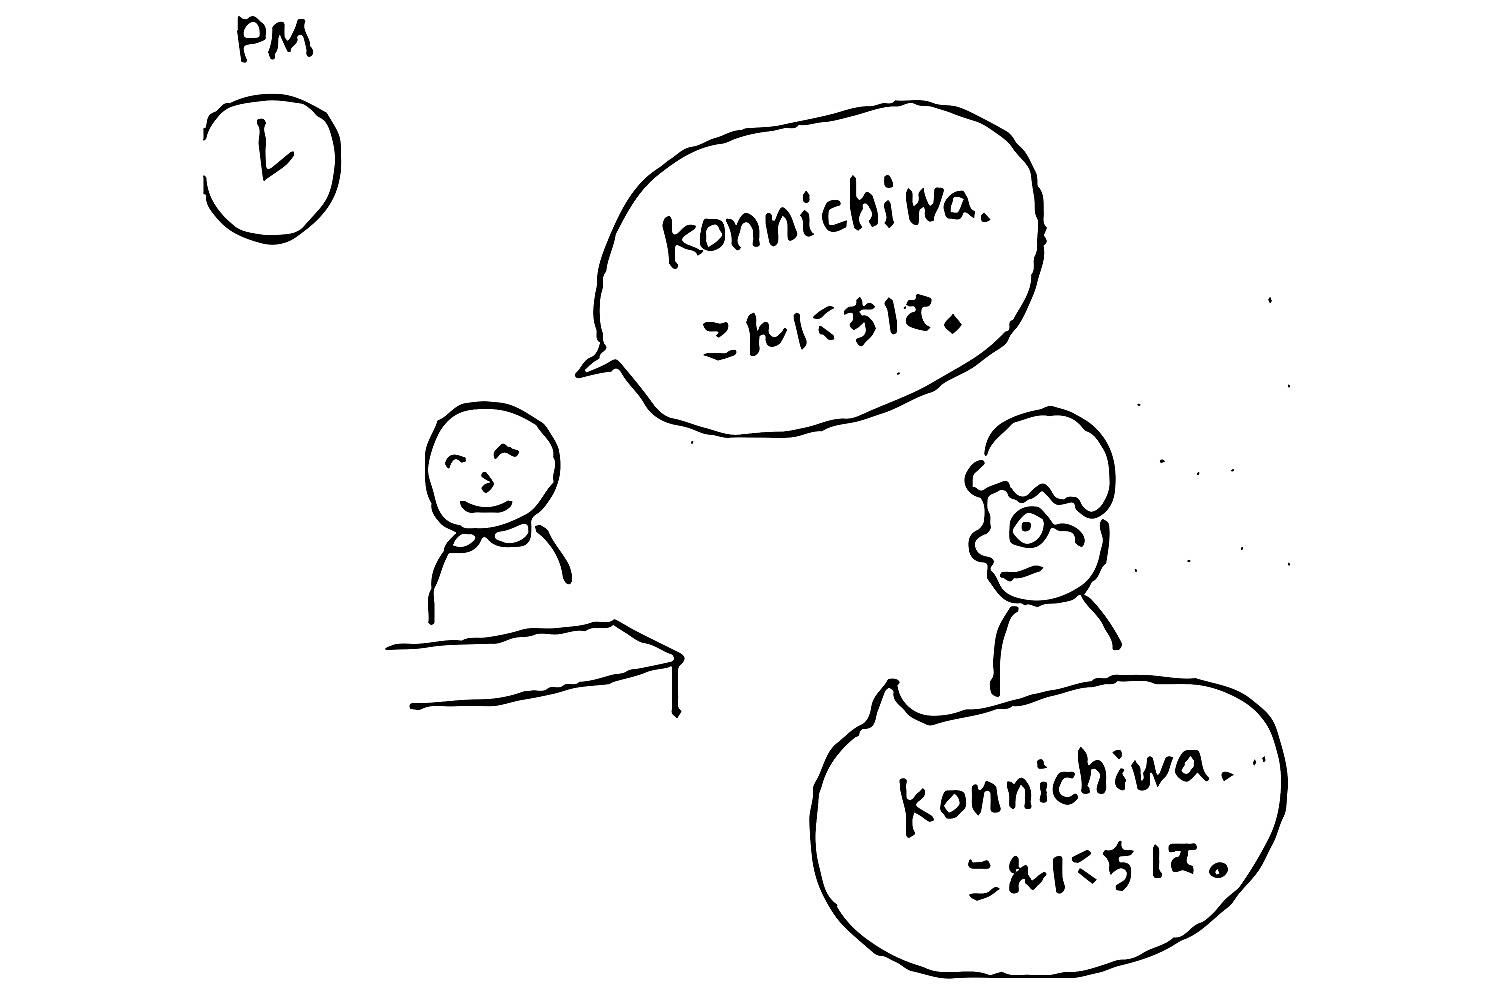 Good morning and other common japanese greetings good morning and other common japanese greetings kristyandbryce Image collections